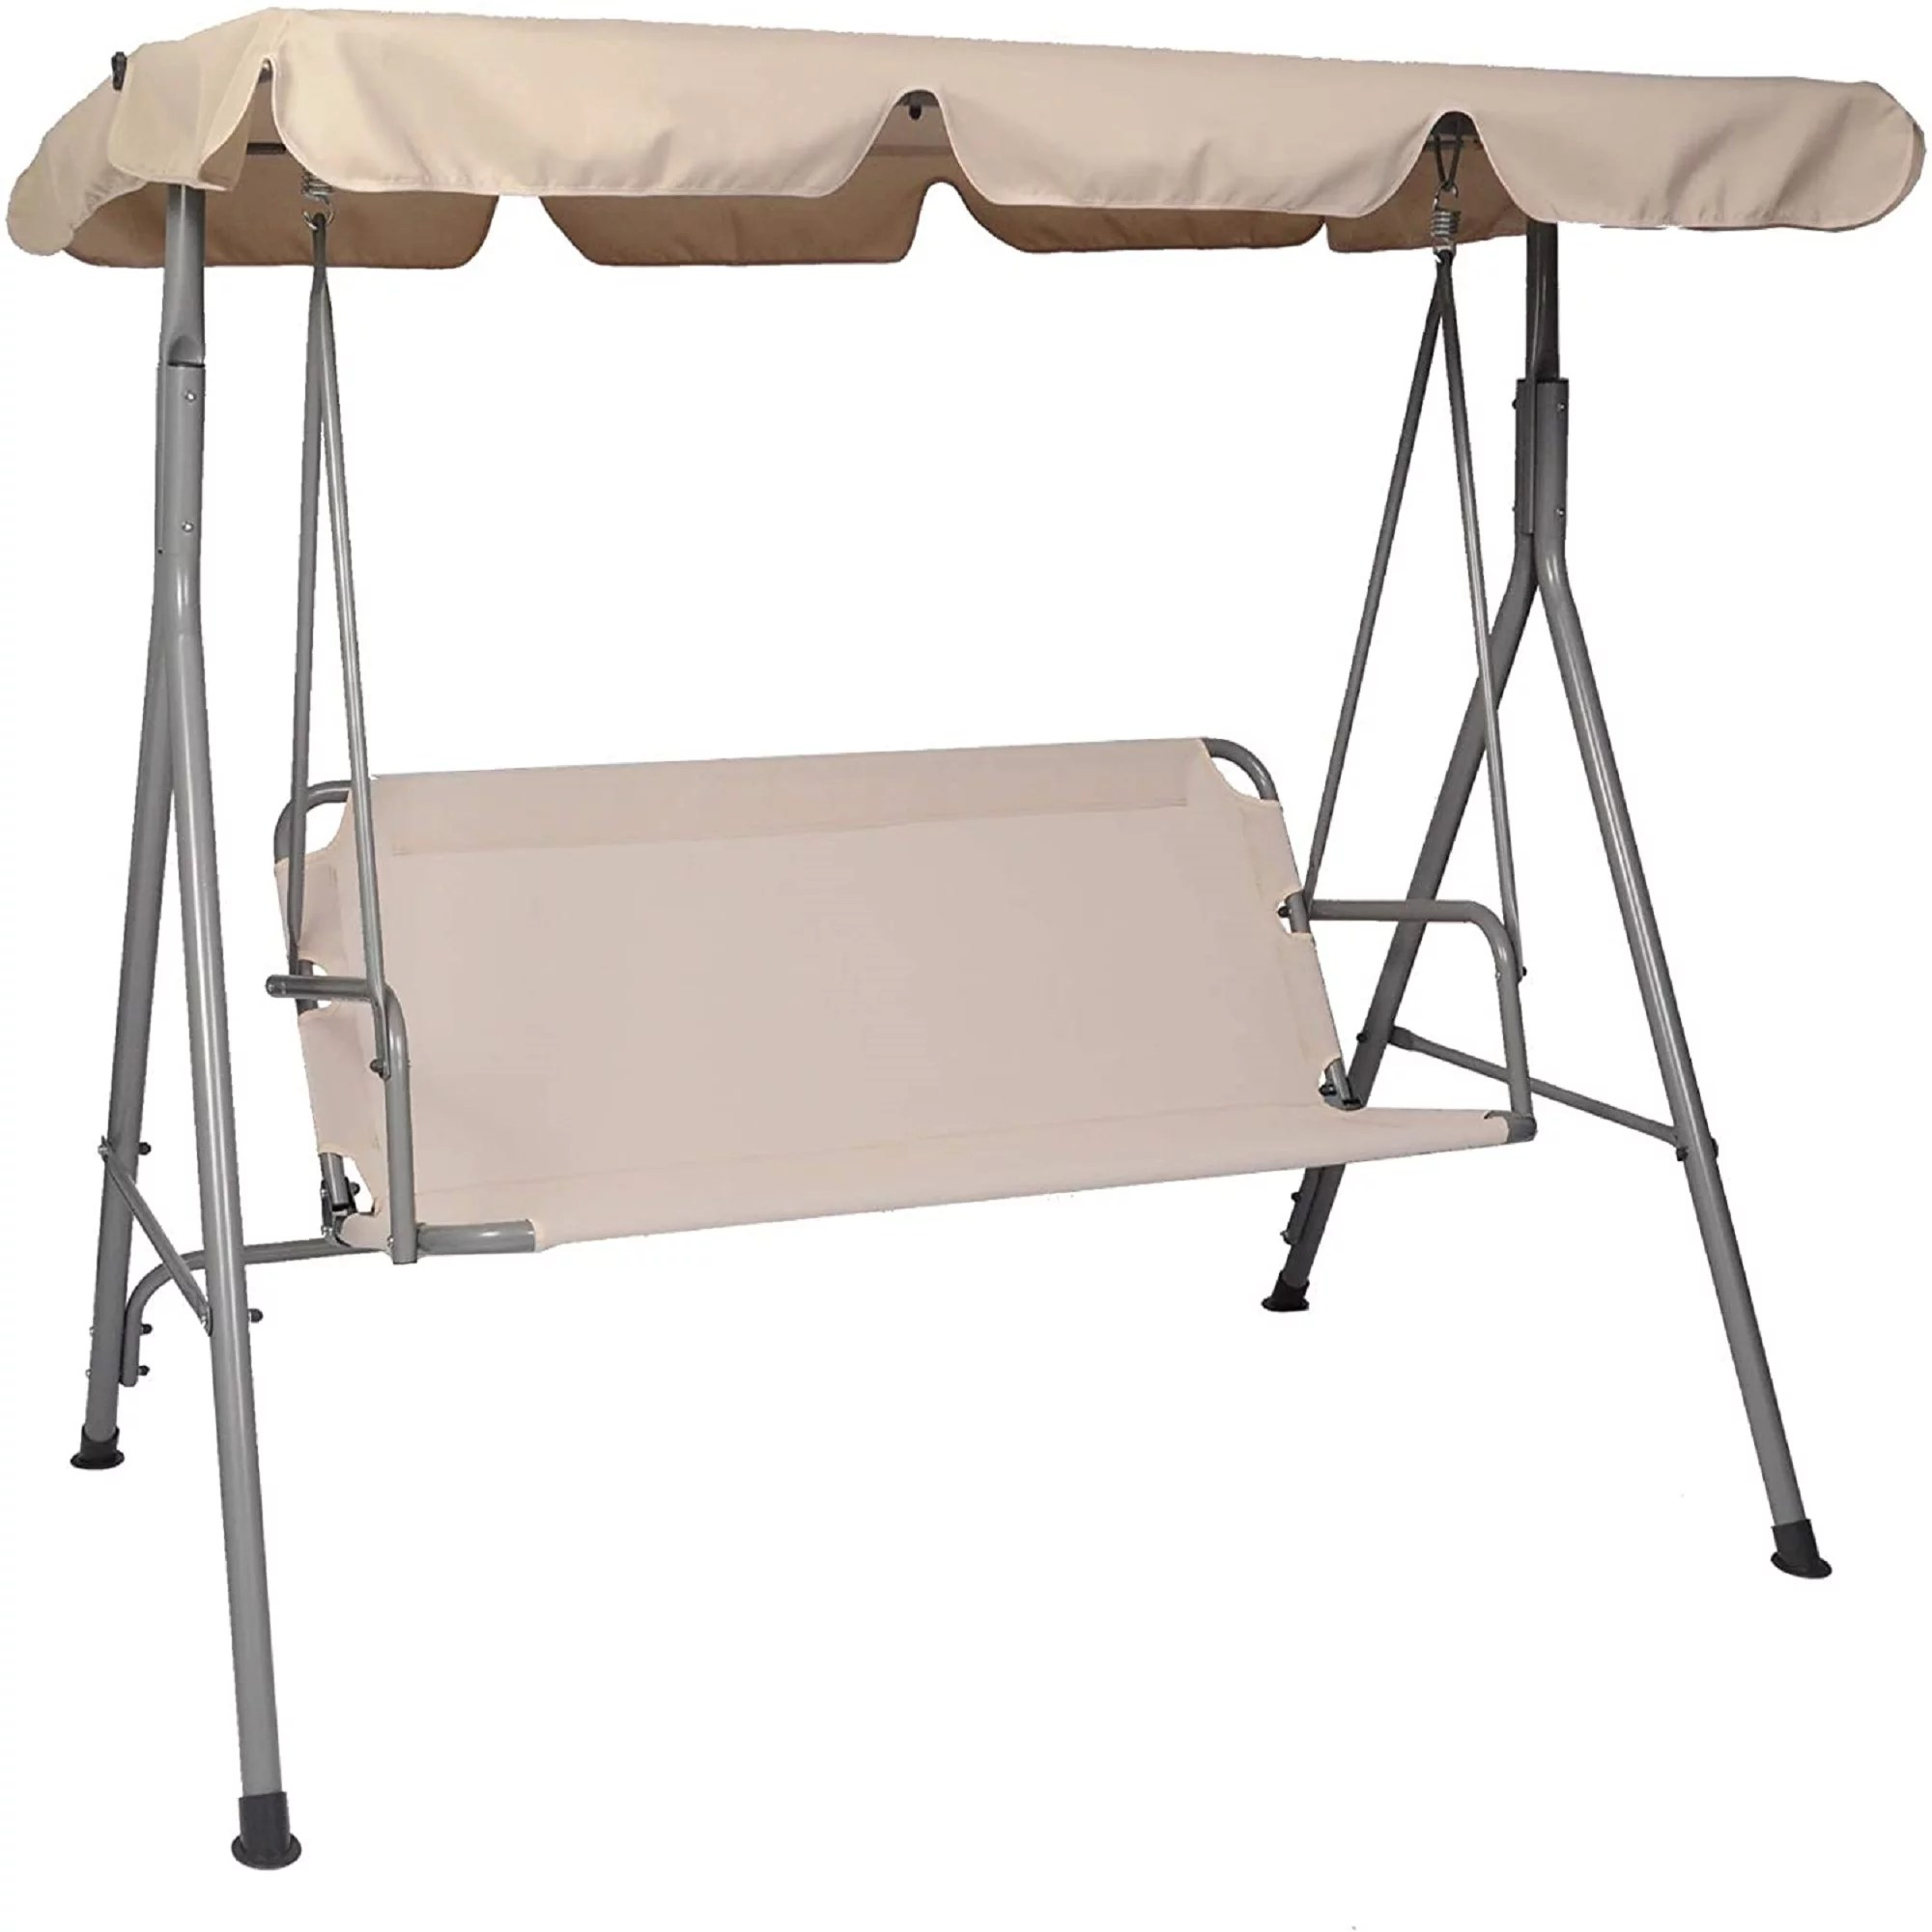 karmas product patio swing 3 person porch swing with stand and waterproof canopy all weather resistant swing bench beige walmart com